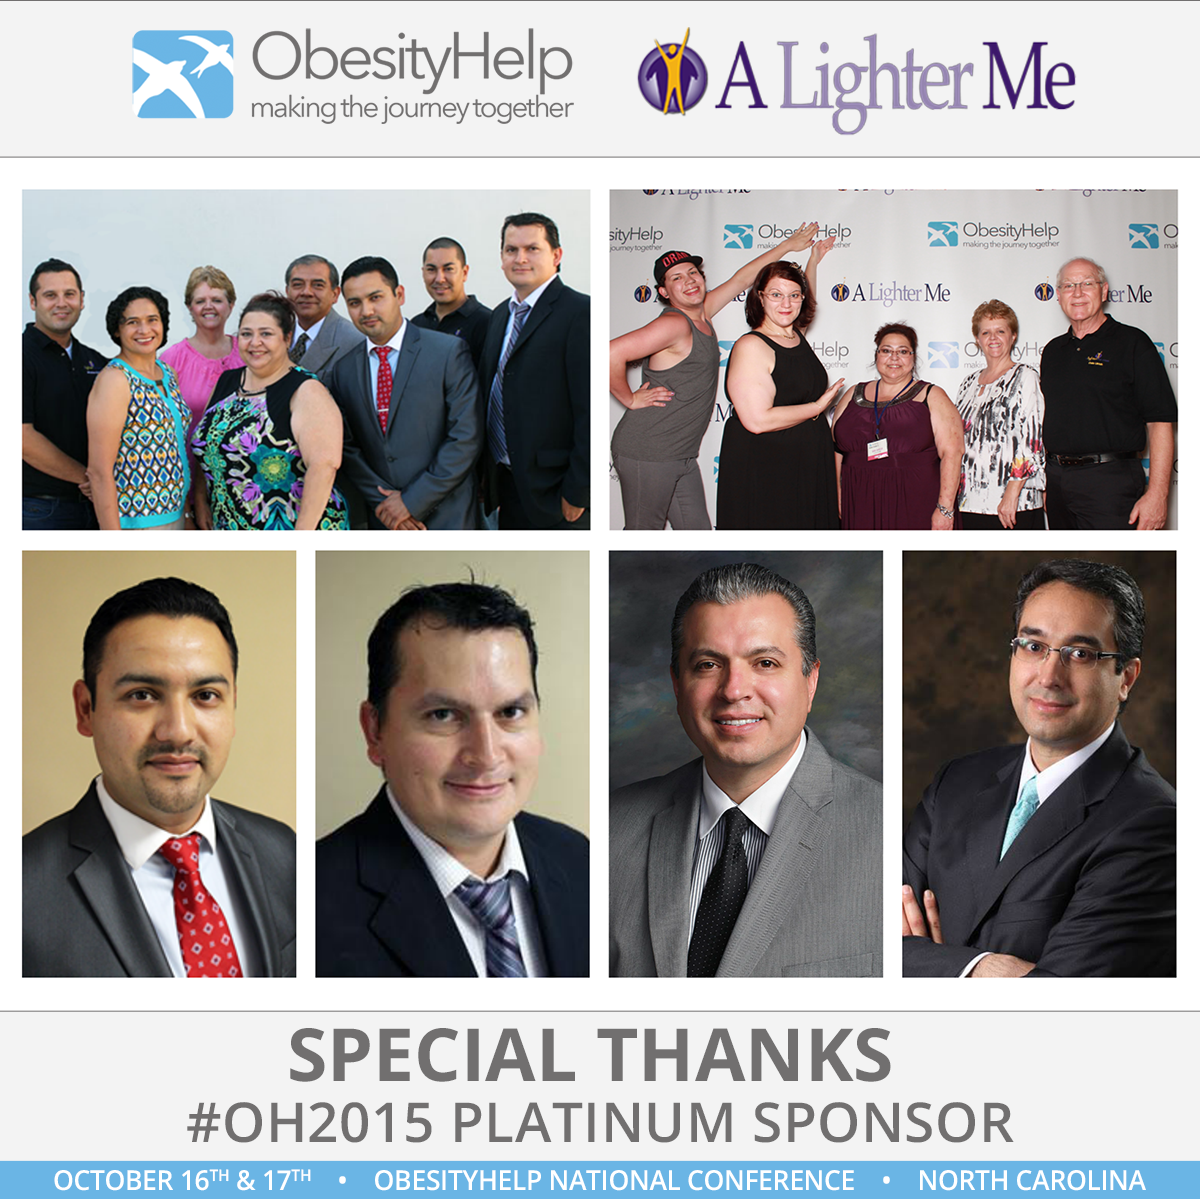 A Lighter Me - Obesity Help Sponsors